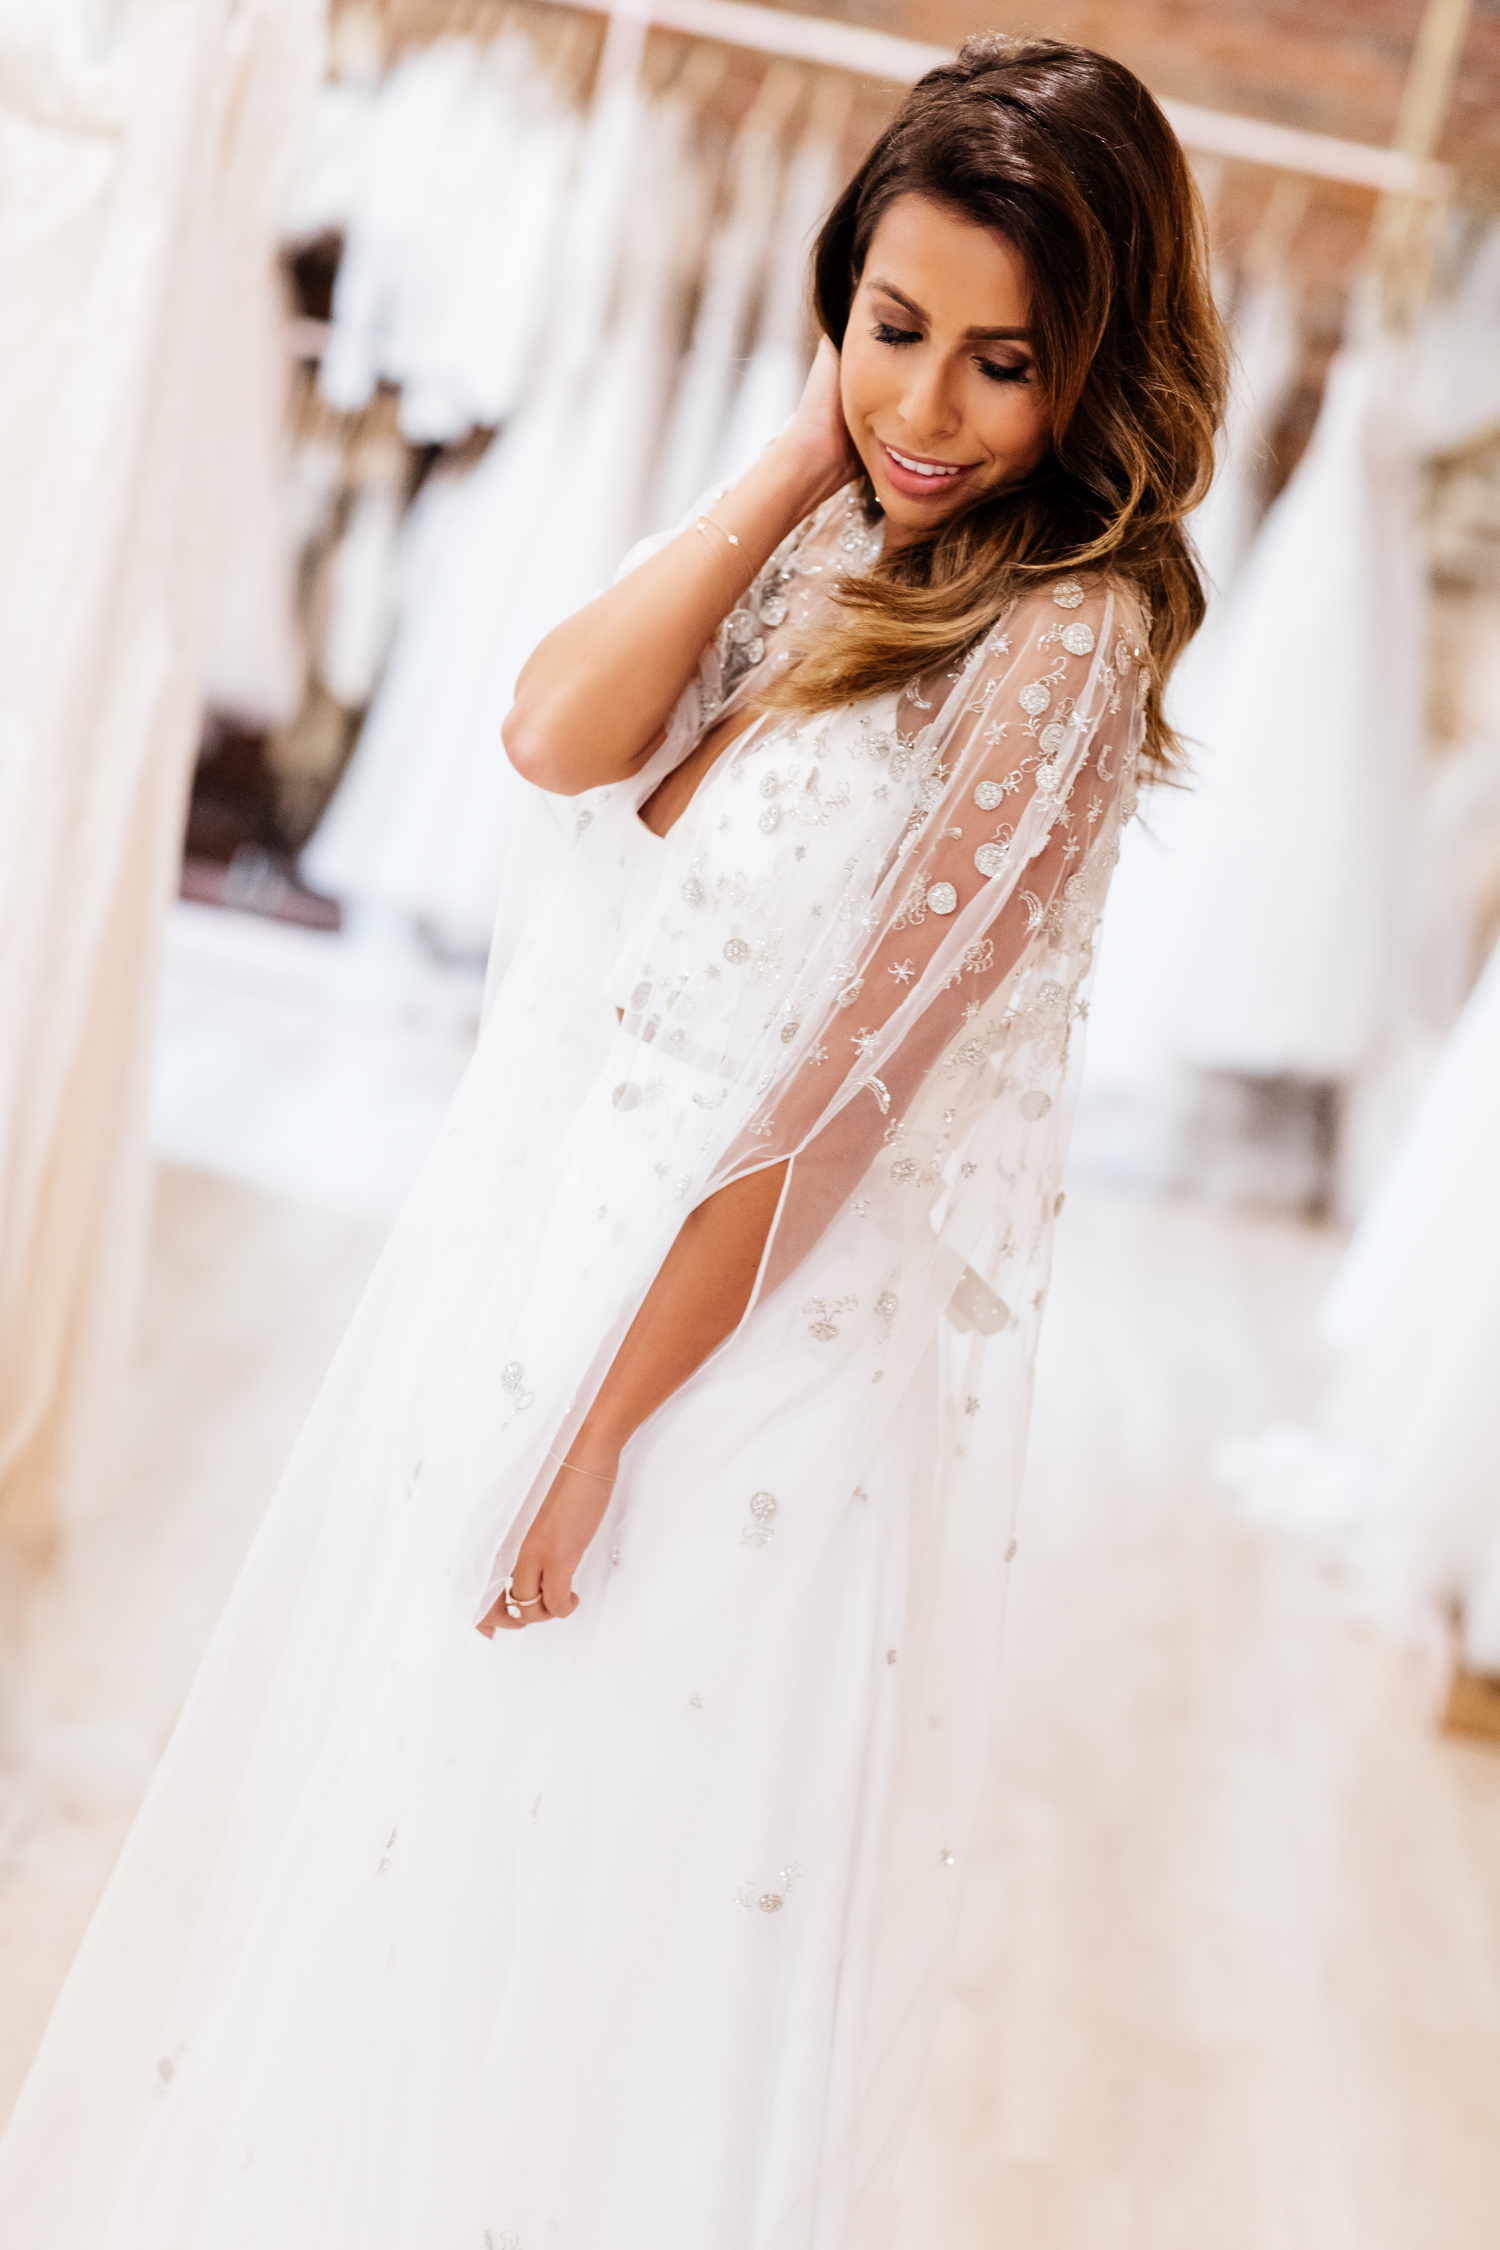 Wedding Cape at Lovely Bride Los Angeles - Everyday Pursuits